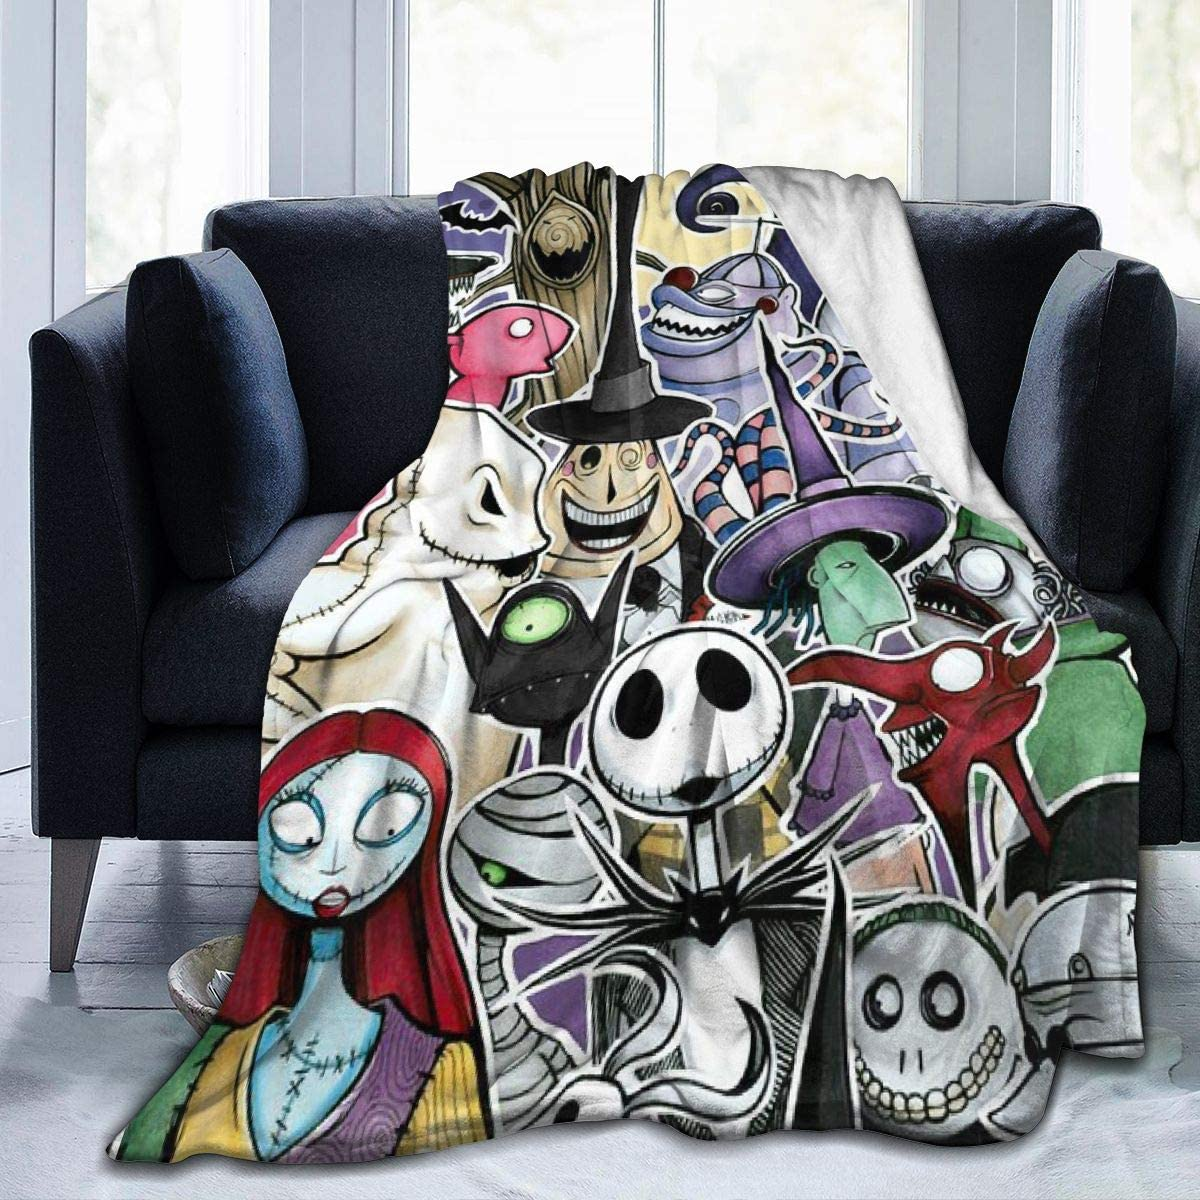 Ready To Ship Nightmare Before Christmas Themed Blanket